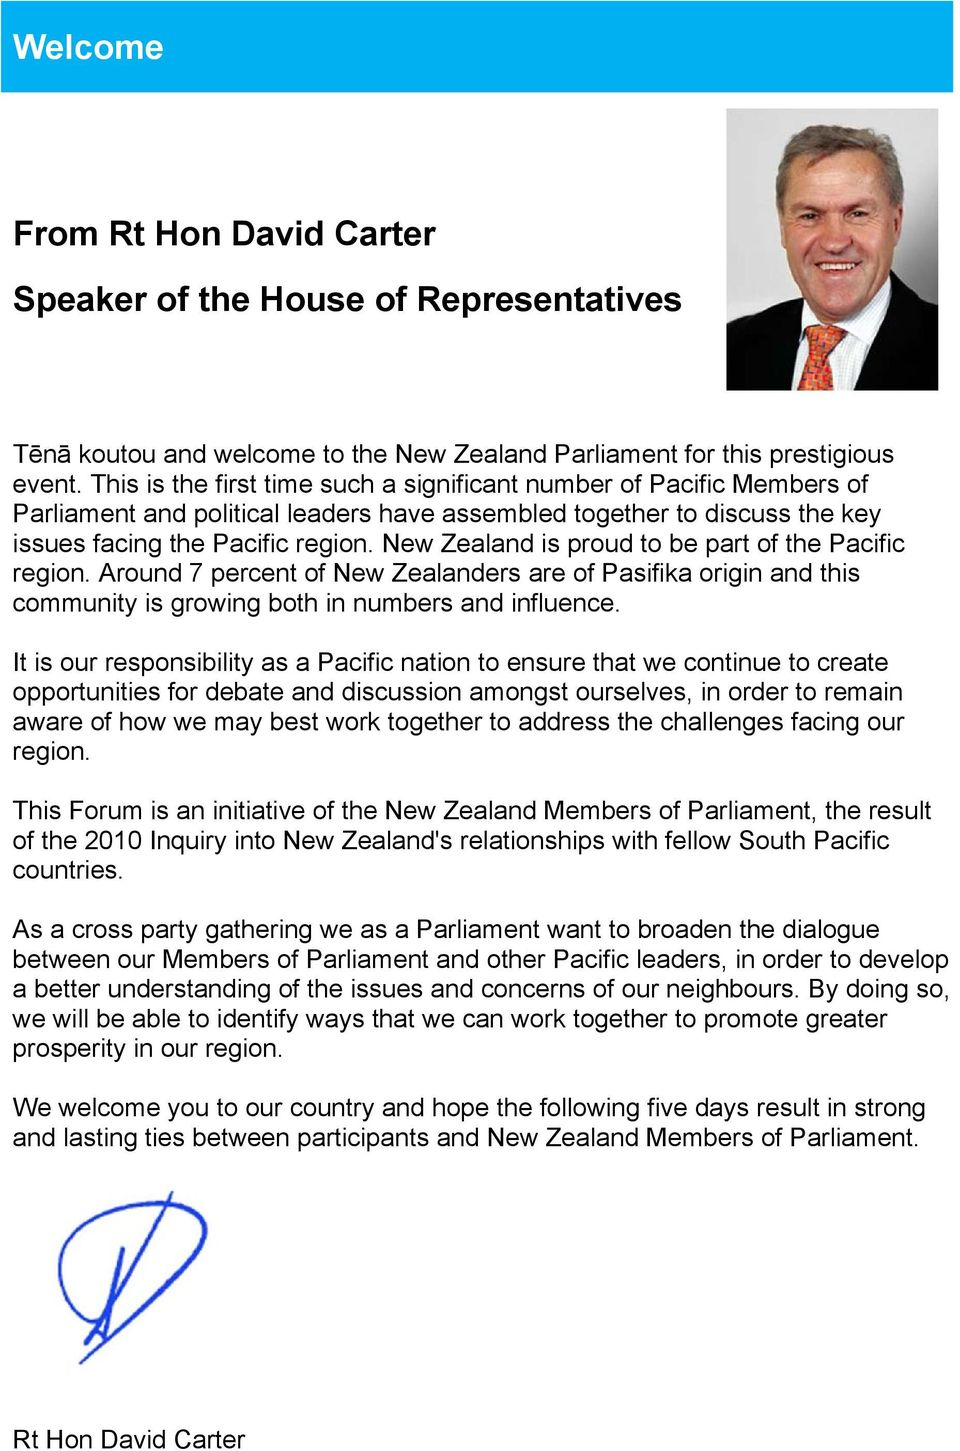 New Zealand is proud to be part of the Pacific region. Around 7 percent of New Zealanders are of Pasifika origin and this community is growing both in numbers and influence.